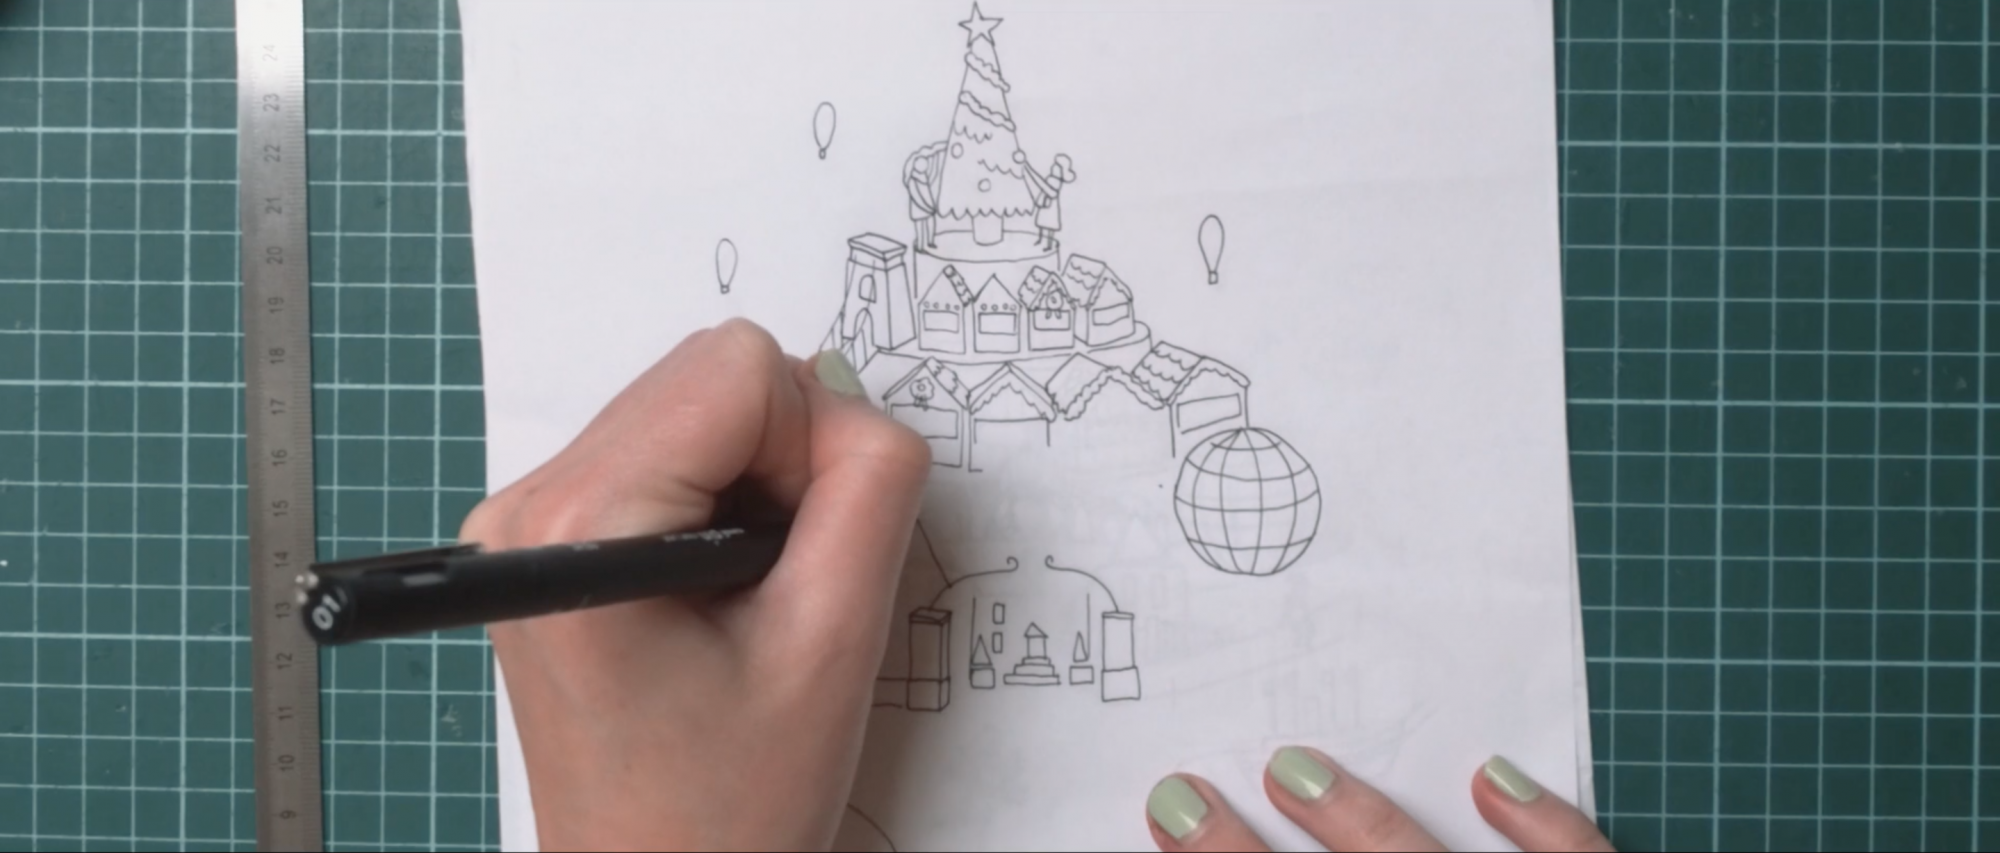 Sam Pierpoint Creates Magical Campaign Promoting Christmas in Bristol Crafted in Paper - Sketches